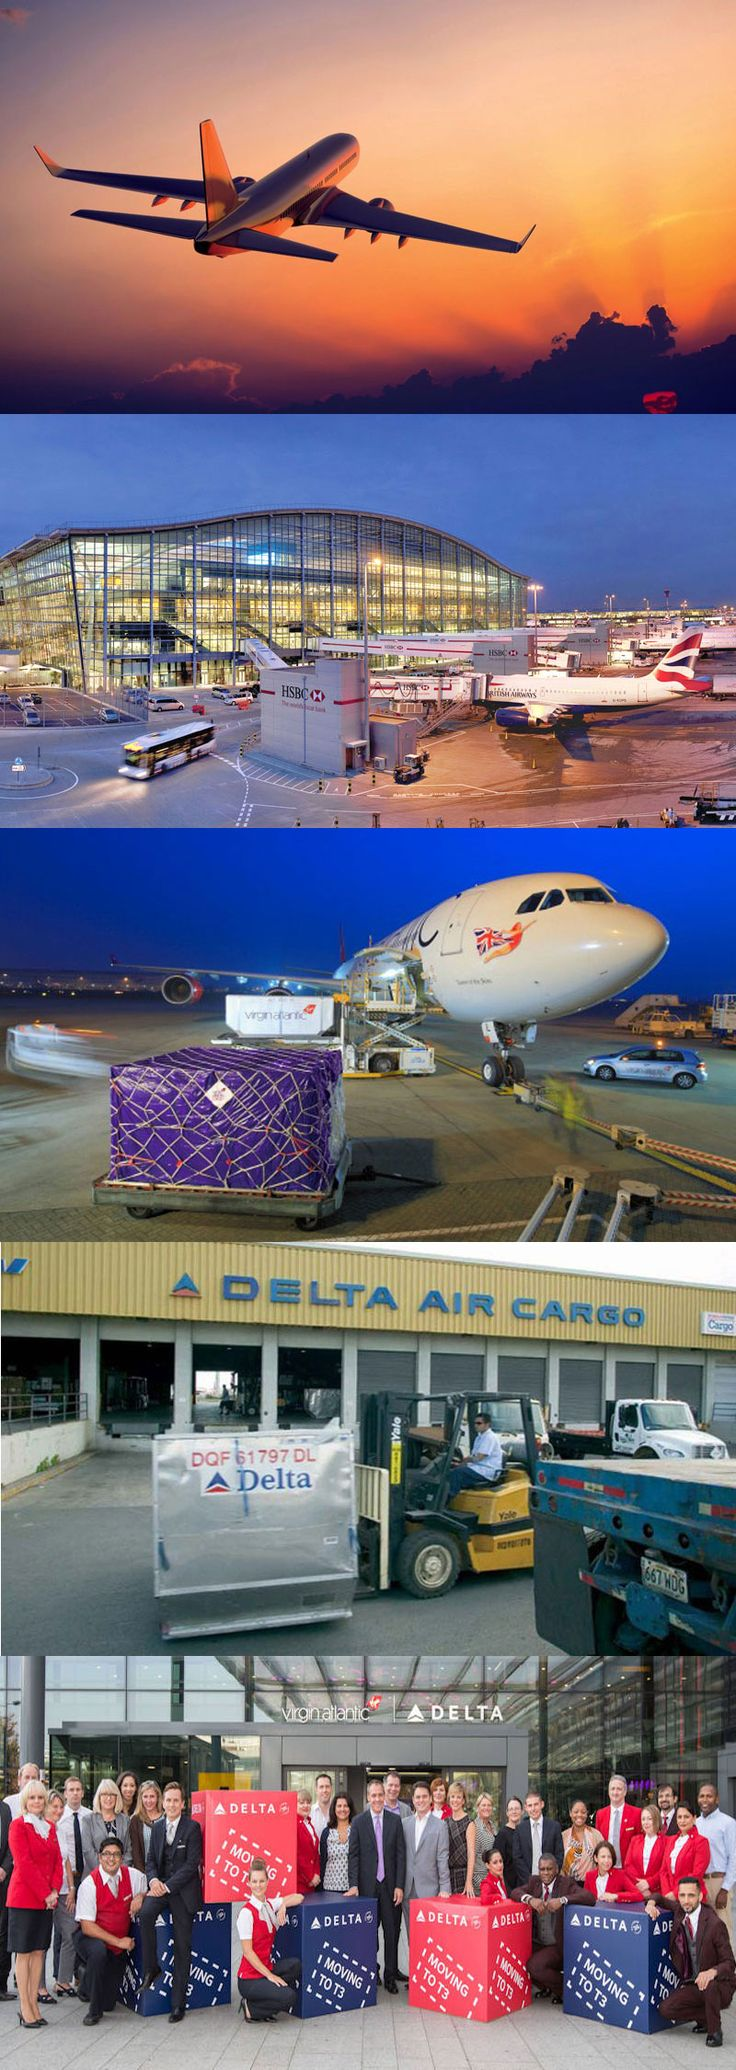 Delta Air and Virgin Atlantic to handle UK Cargo #DeltaAir #VirginAtlantic #UKCargo https://www.parcelstoindia.co.uk/blog/delta-air-virgin-atlantic-handle-uk-cargo/